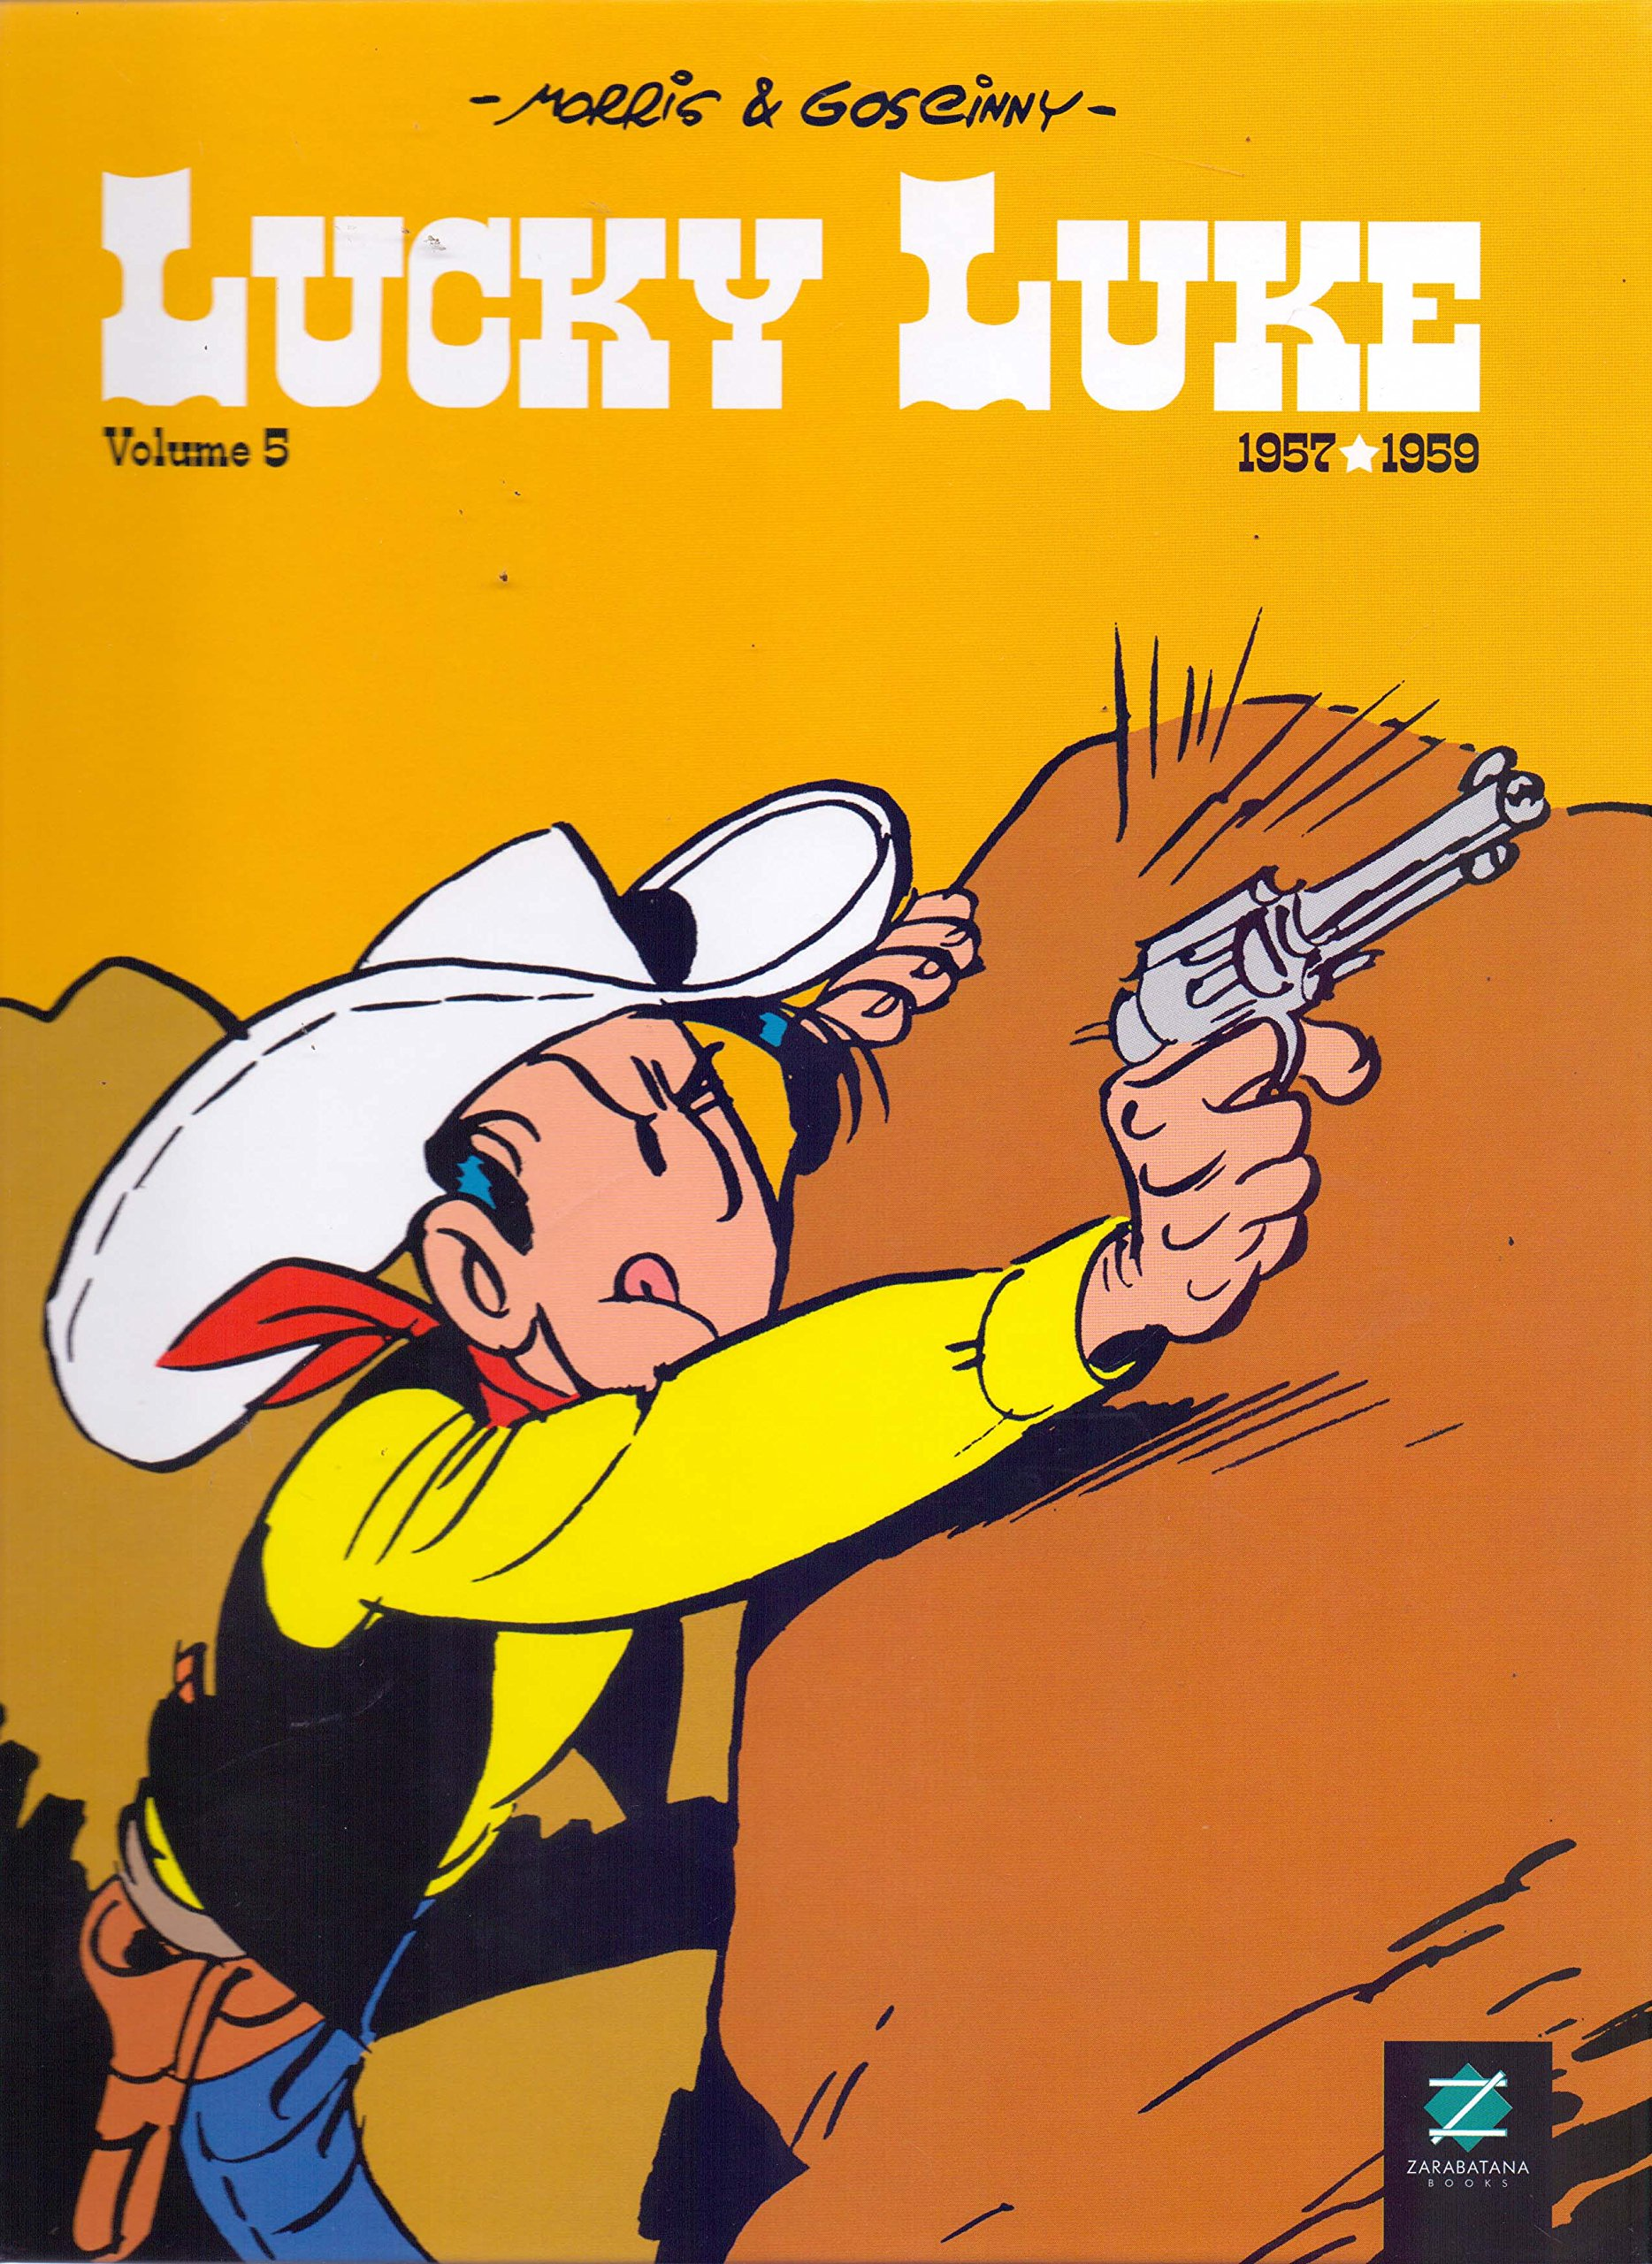 Lucky Luke. 1957-1959 - Volume 5